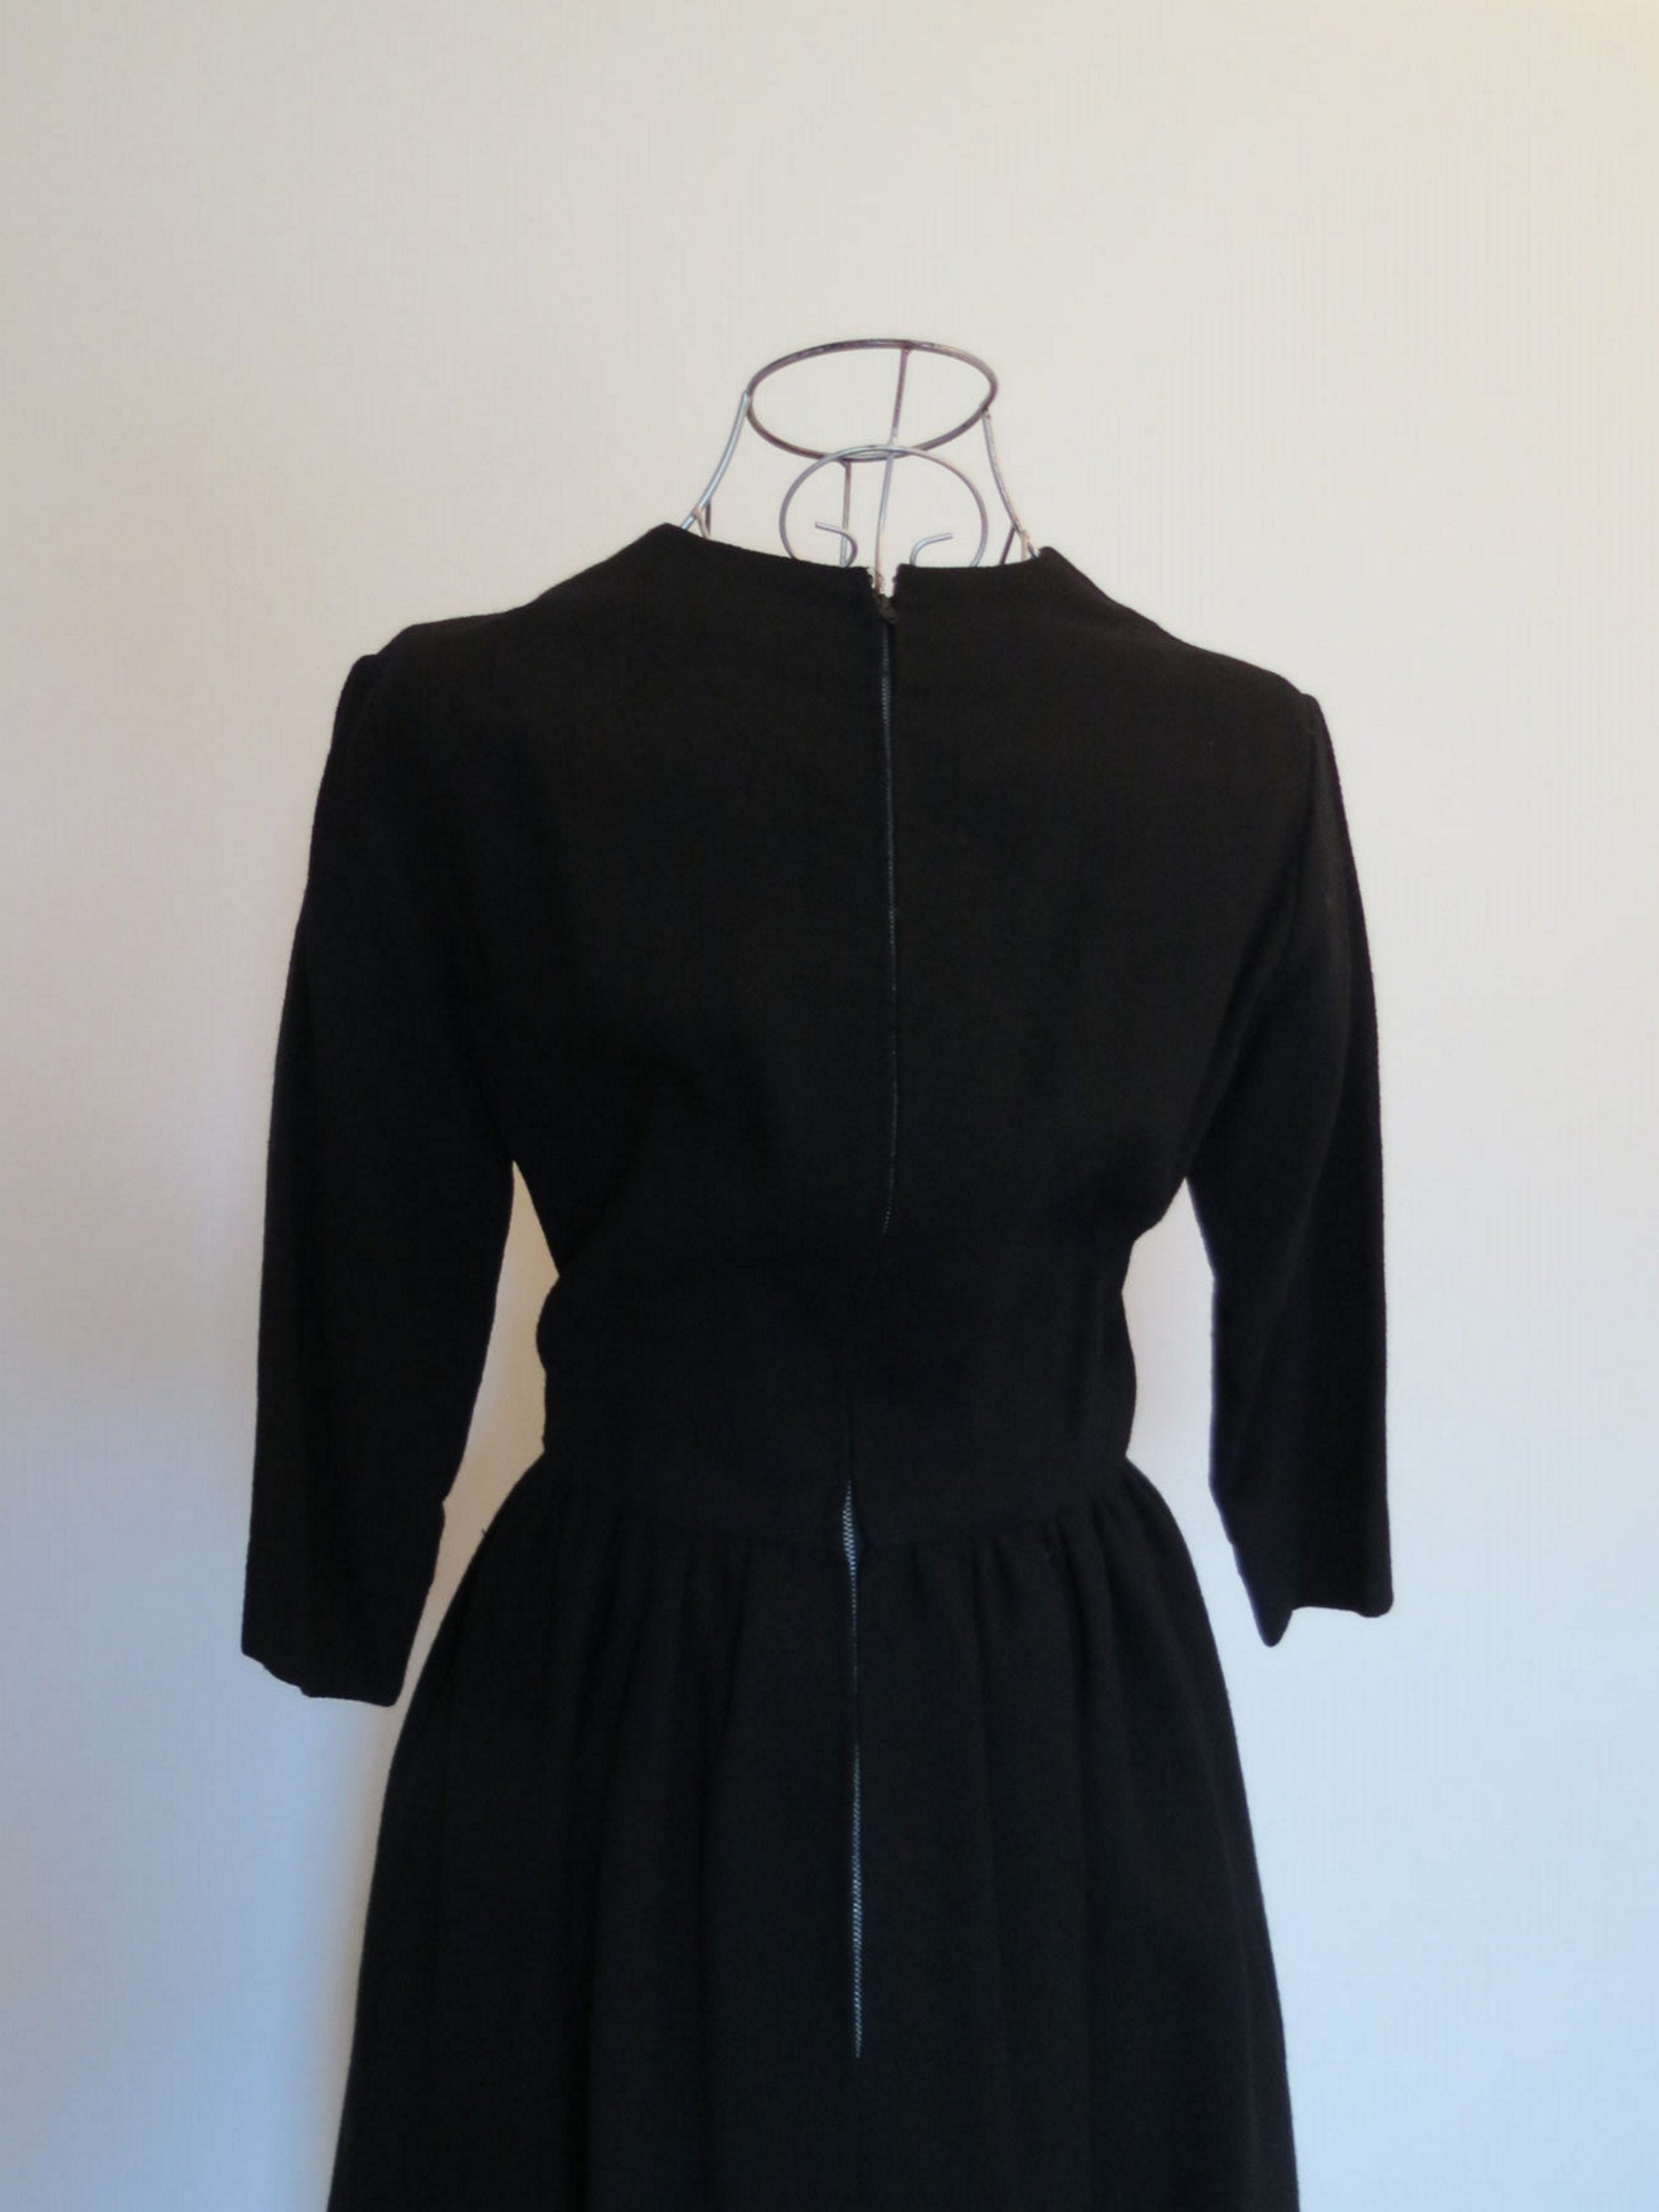 1960s vintage black wool crepe cocktail dress